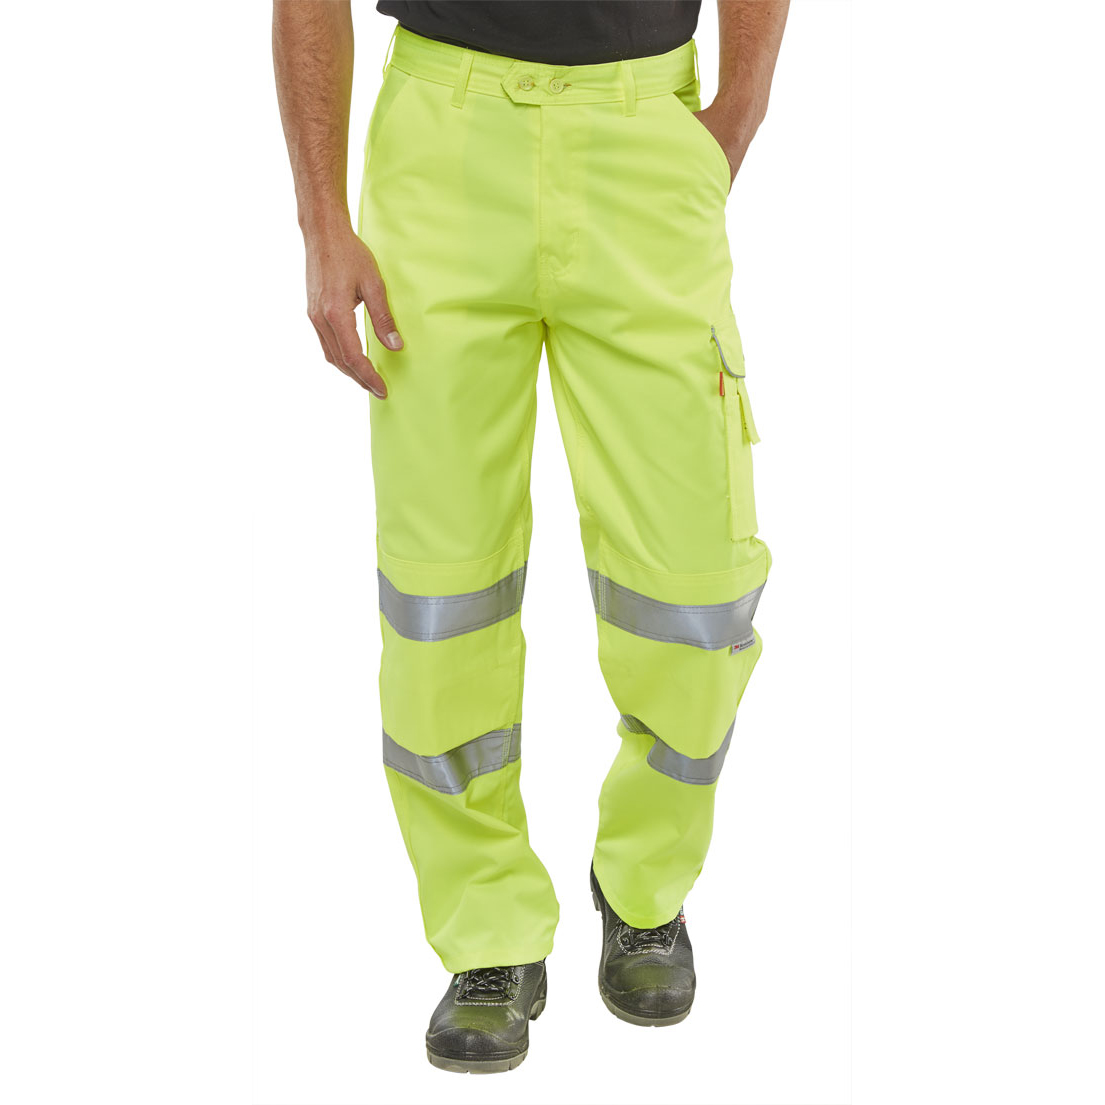 BSeen Trousers Polycotton Hi-Vis EN471 Saturn Yellow 34 Long Ref PCTENSY34T *Up to 3 Day Leadtime*